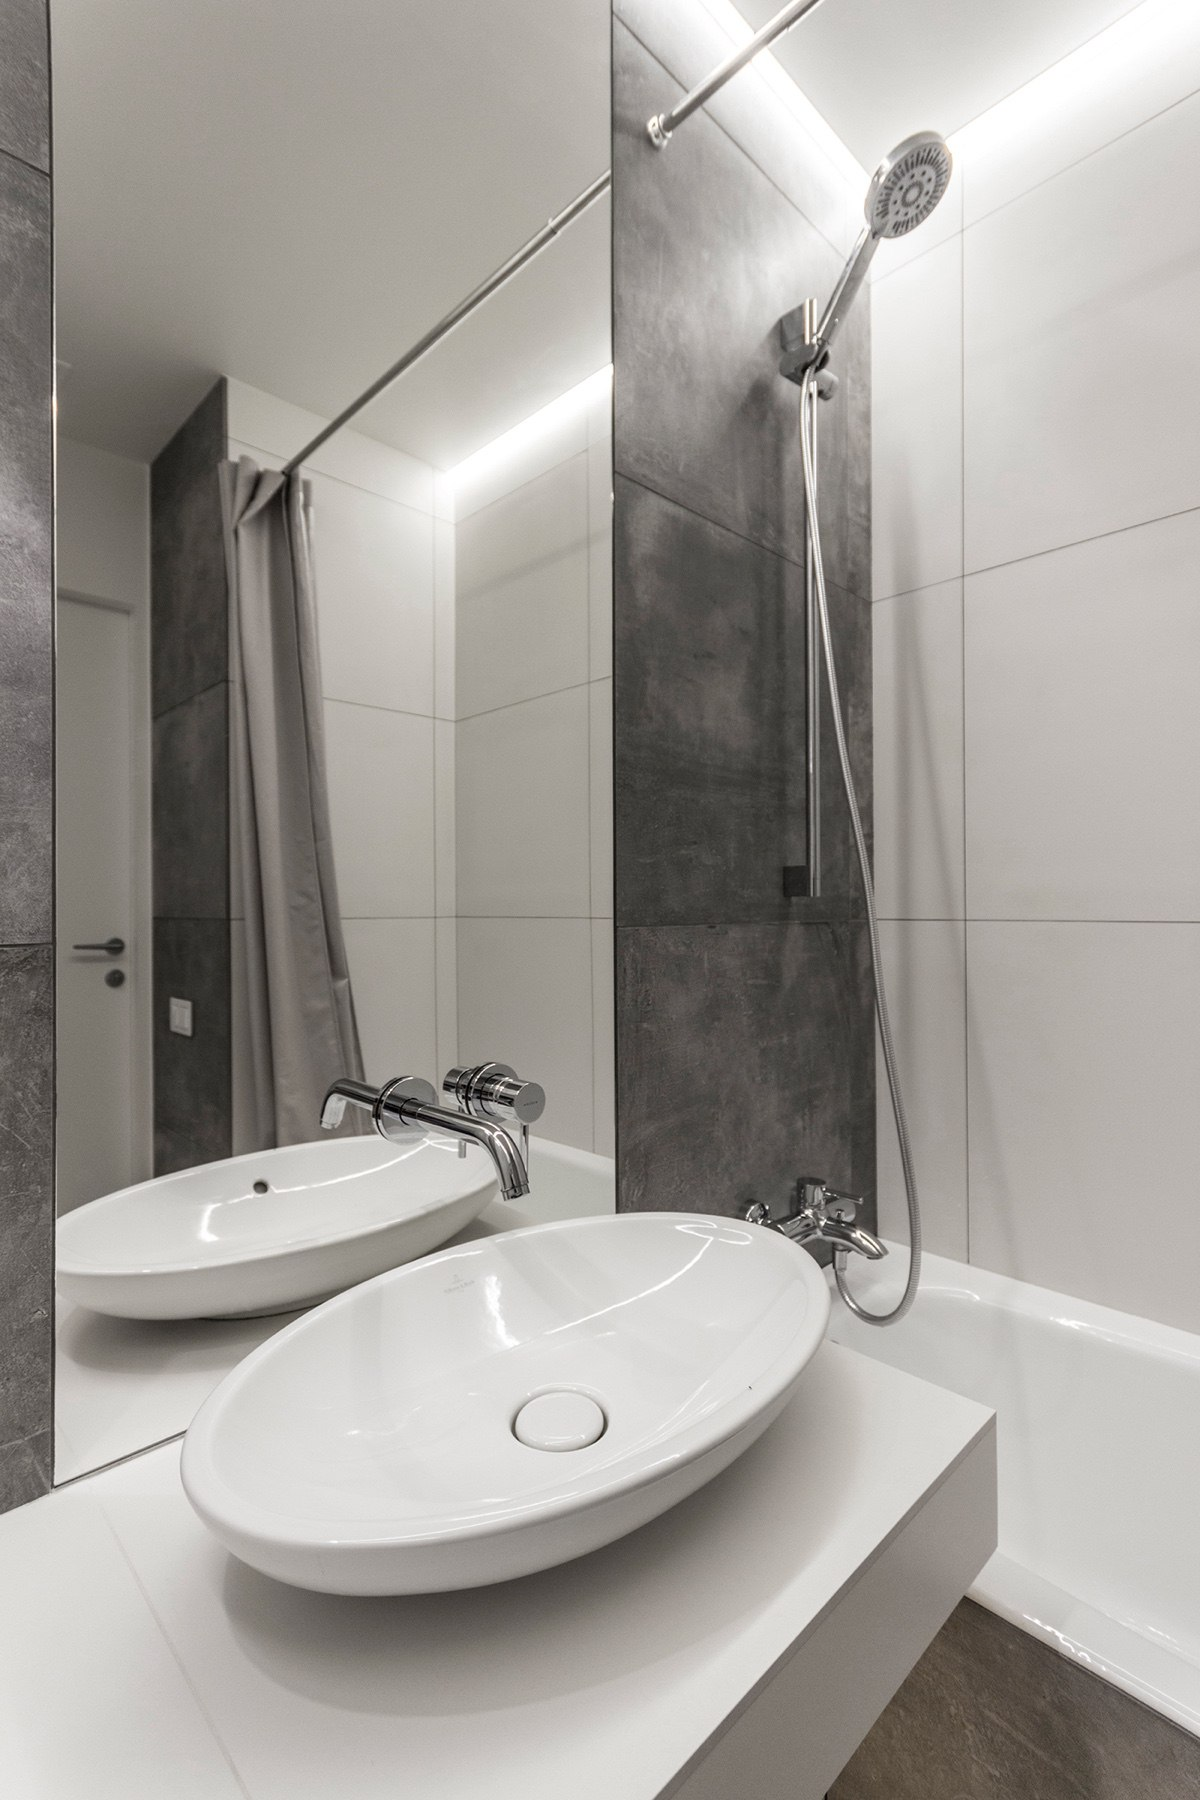 Minimalist Bathroom Grey Slate Tiles Large Format Porcelain Standing Hand Basin Chrome Shower Head - Super small studio apartment under 50 square meters includes floor plan